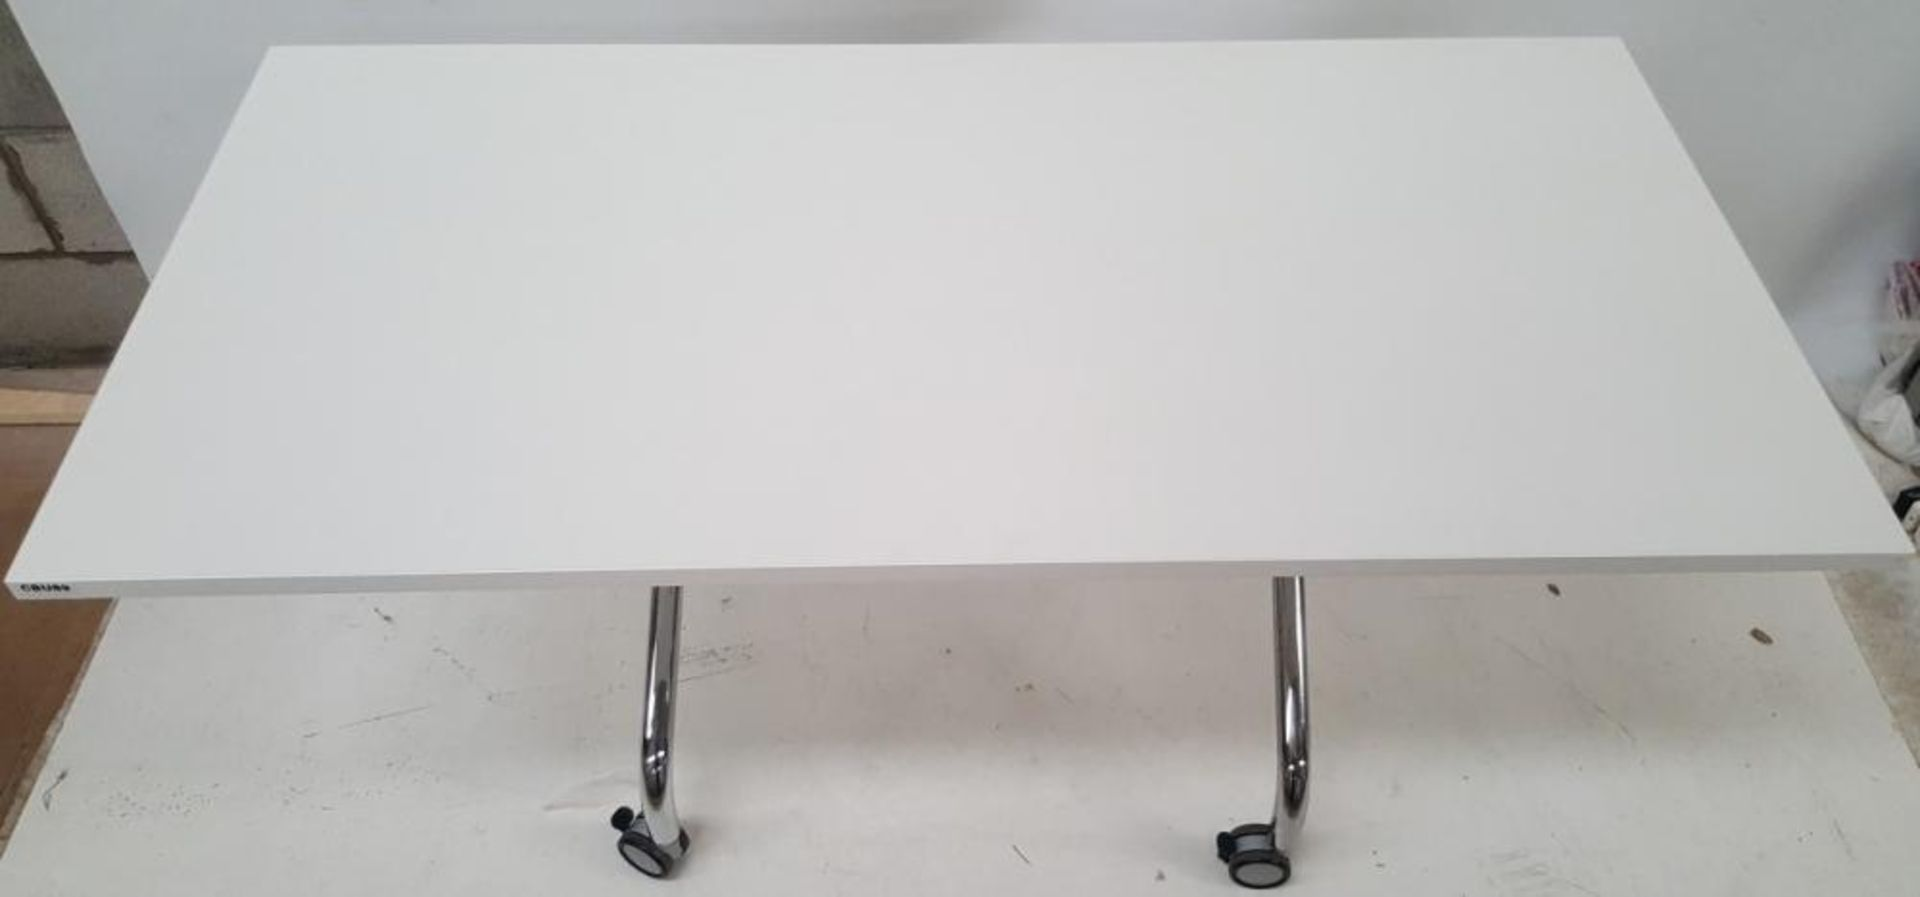 Lot 3512 - 1 x Large Premium Office Table With Folding Top - Colour: Brilliant White With Chrome Legs - Dimensi